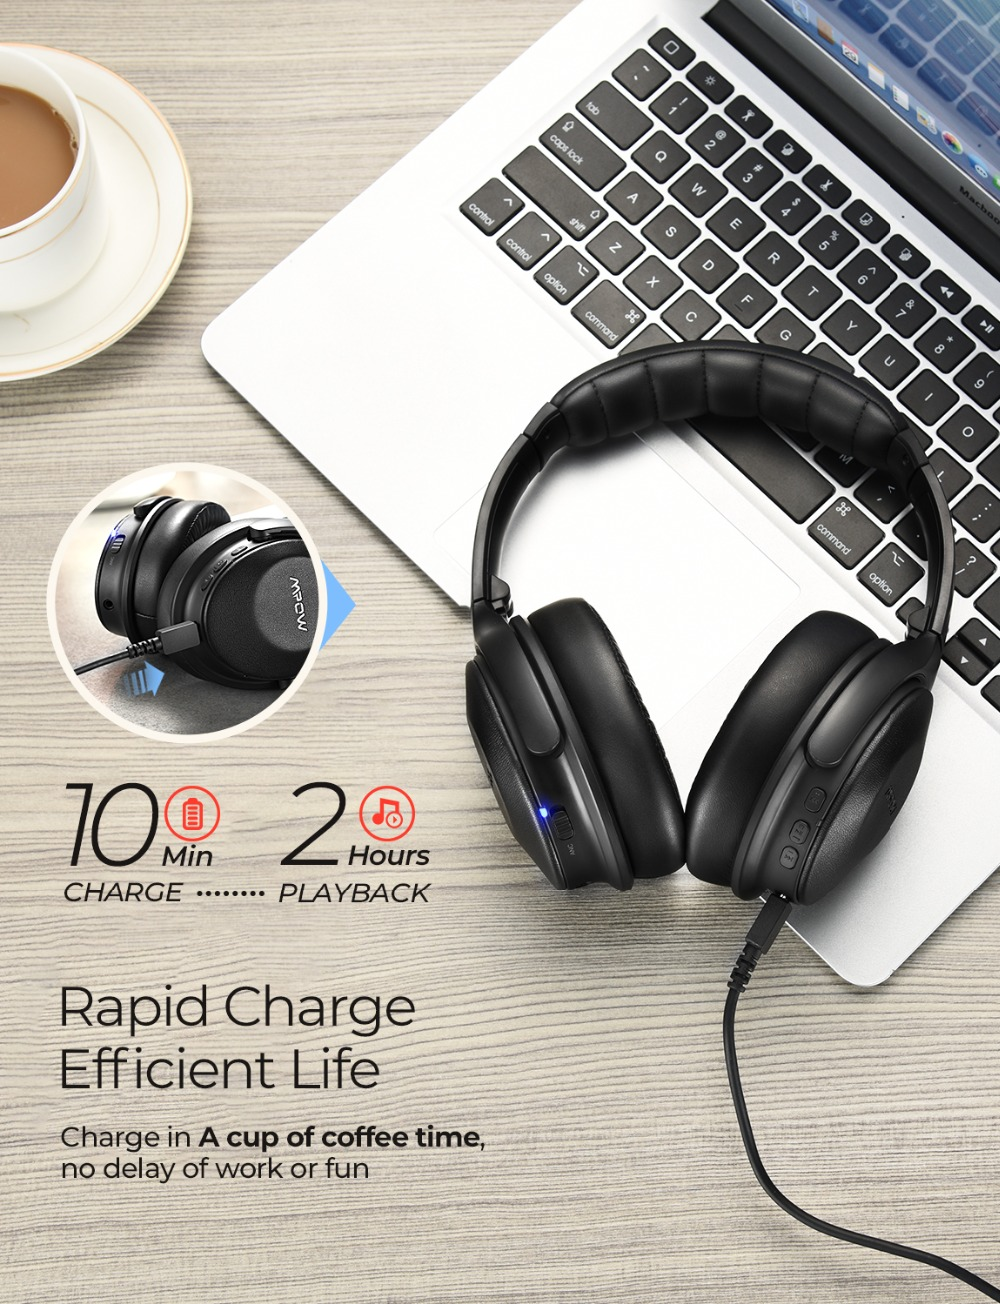 Mpow H17 Wireless Headphone Bluetooth ANC Headphones Fast Charging Active Noise Cancelling Headset For Huawei P30 Pro iPhone X 6 (4)